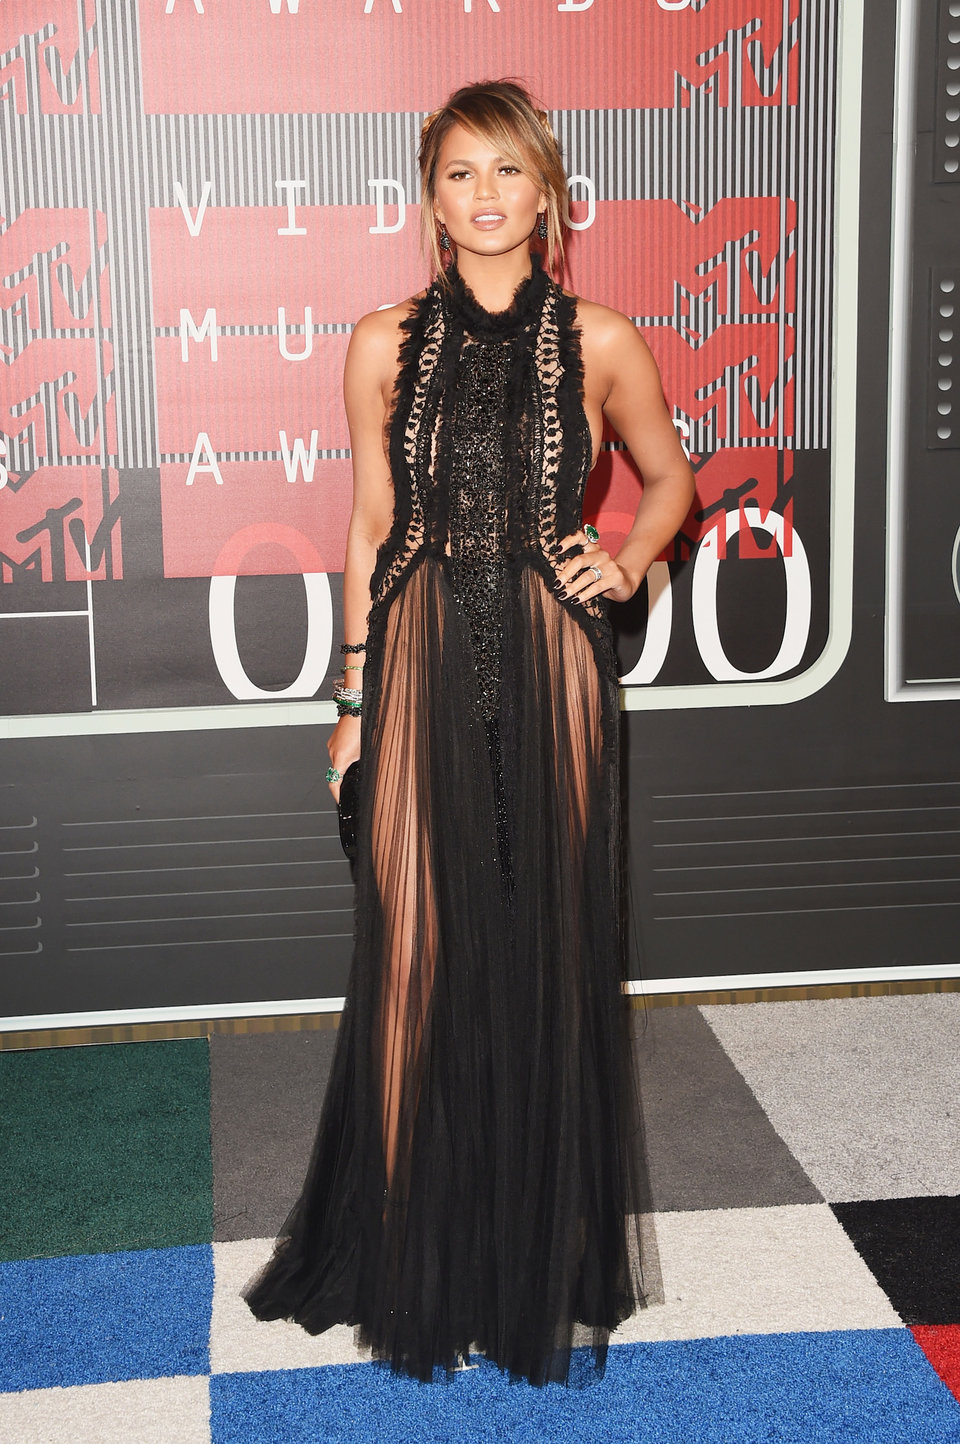 that wasnt the first time teigen stepped onto a red carpet in a daring dress heres her look from the 2015 vmas